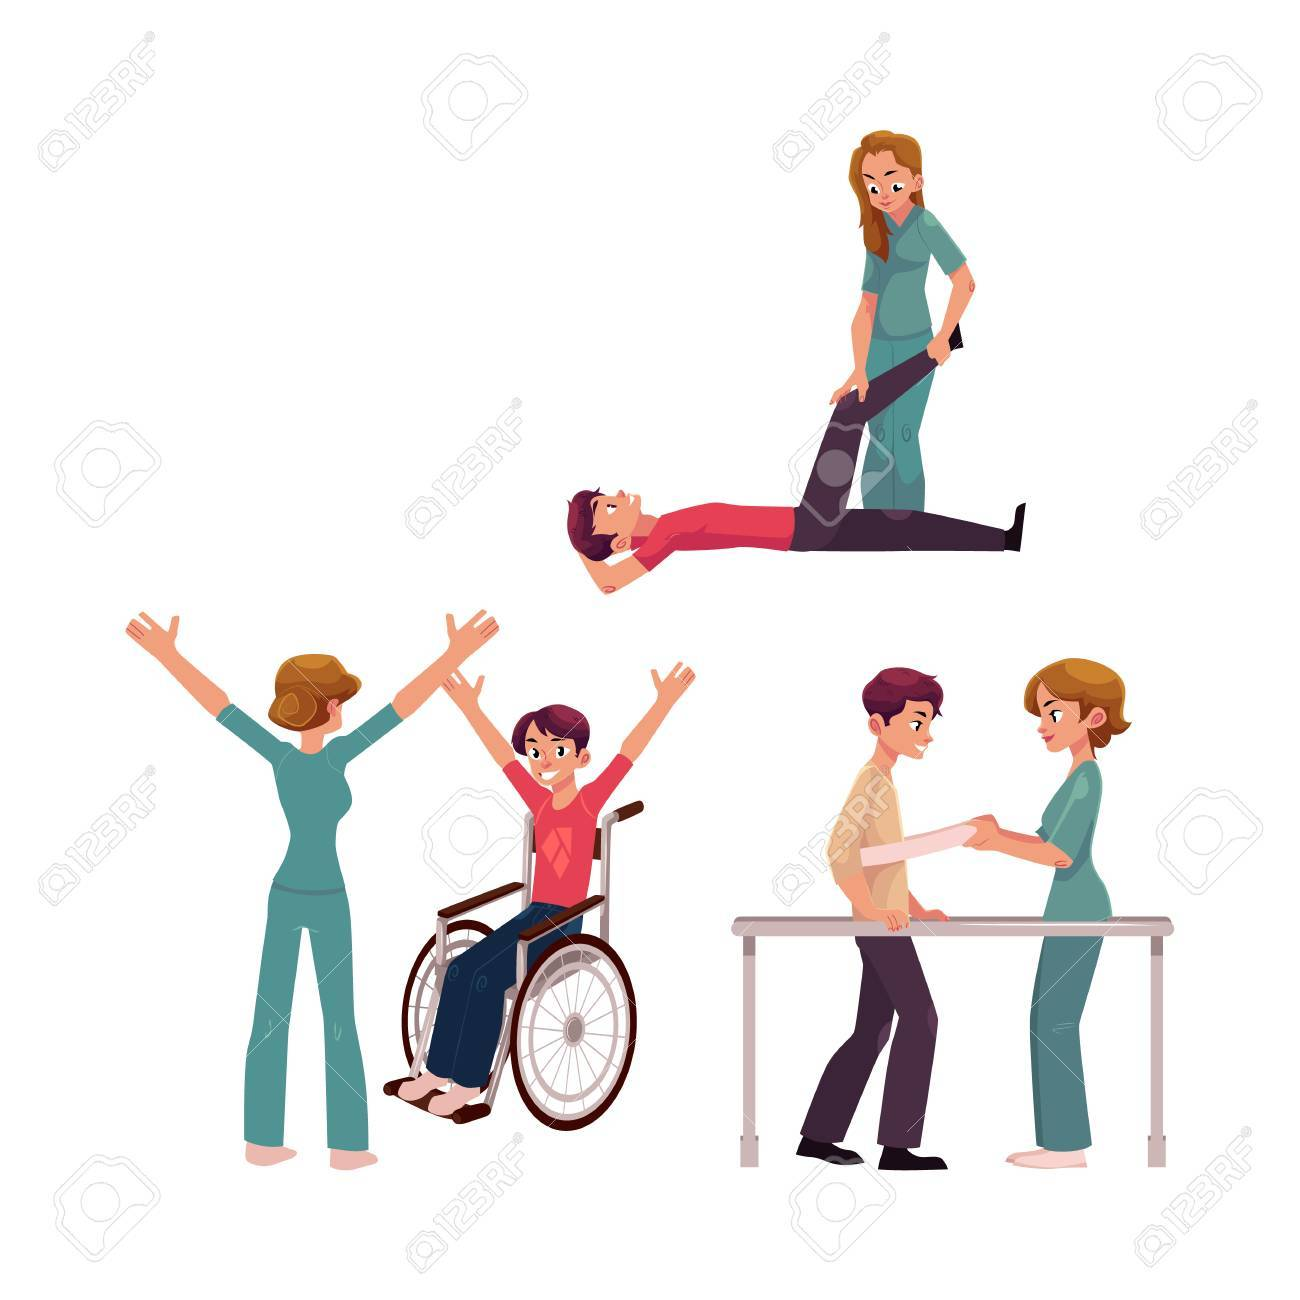 Medical rehabilitation, physical therapy activities, physiotherapist working with patients, cartoon vector illustration on white background. Medical rehabilitation, physical therapy, nurse, patients - 82727742